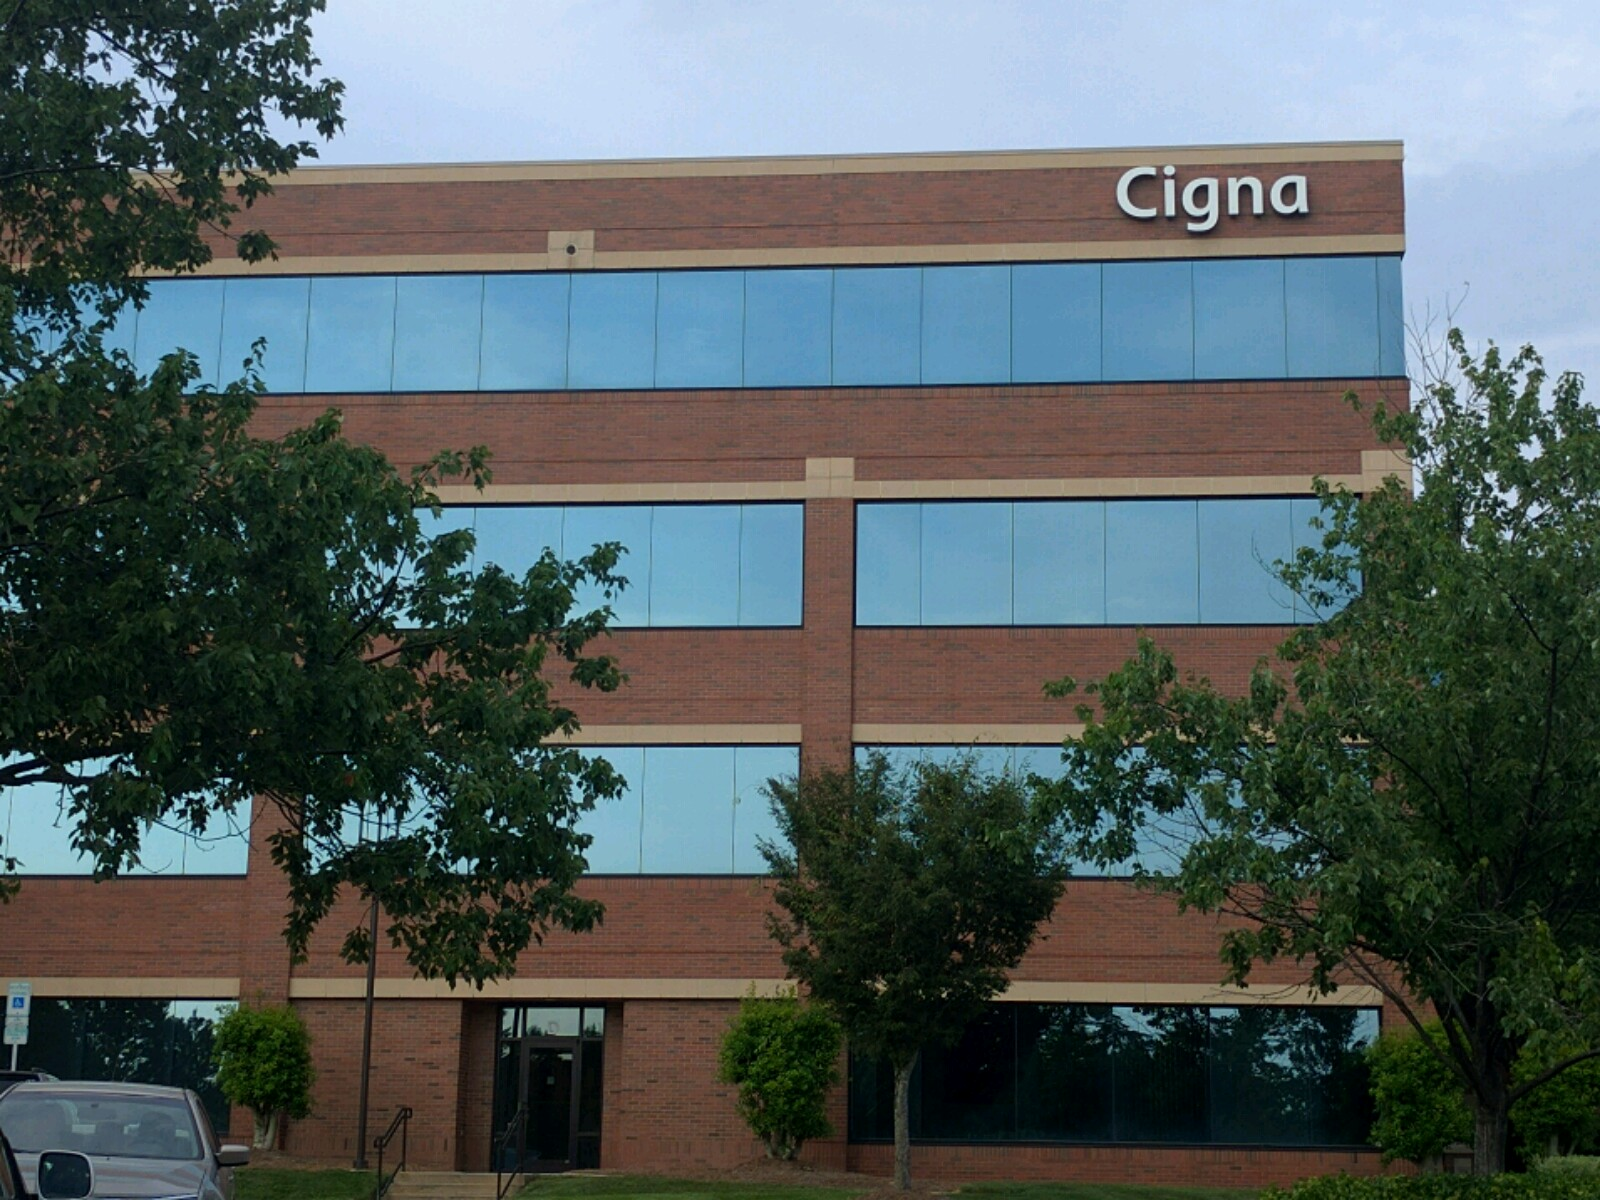 Cigna office in Raleigh, North Carolina.